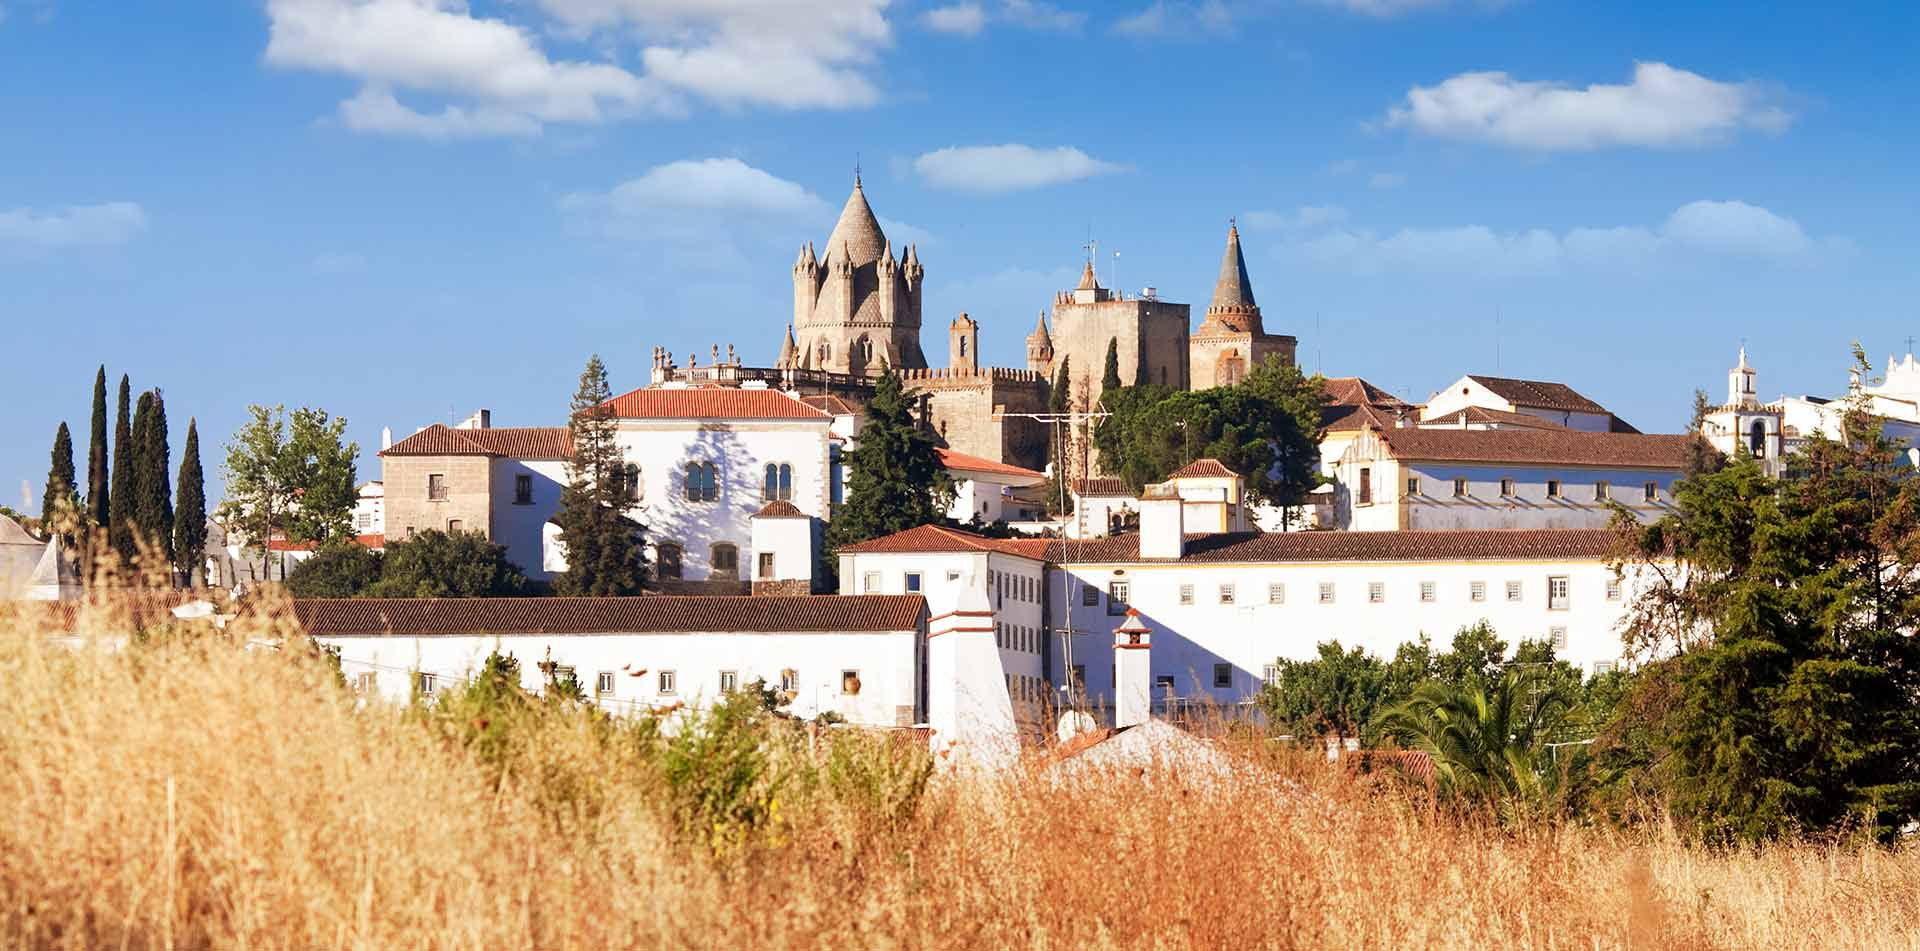 Europe Portugal view of medieval Cathedral of Evora from outskirts of city - luxury vacation destinations